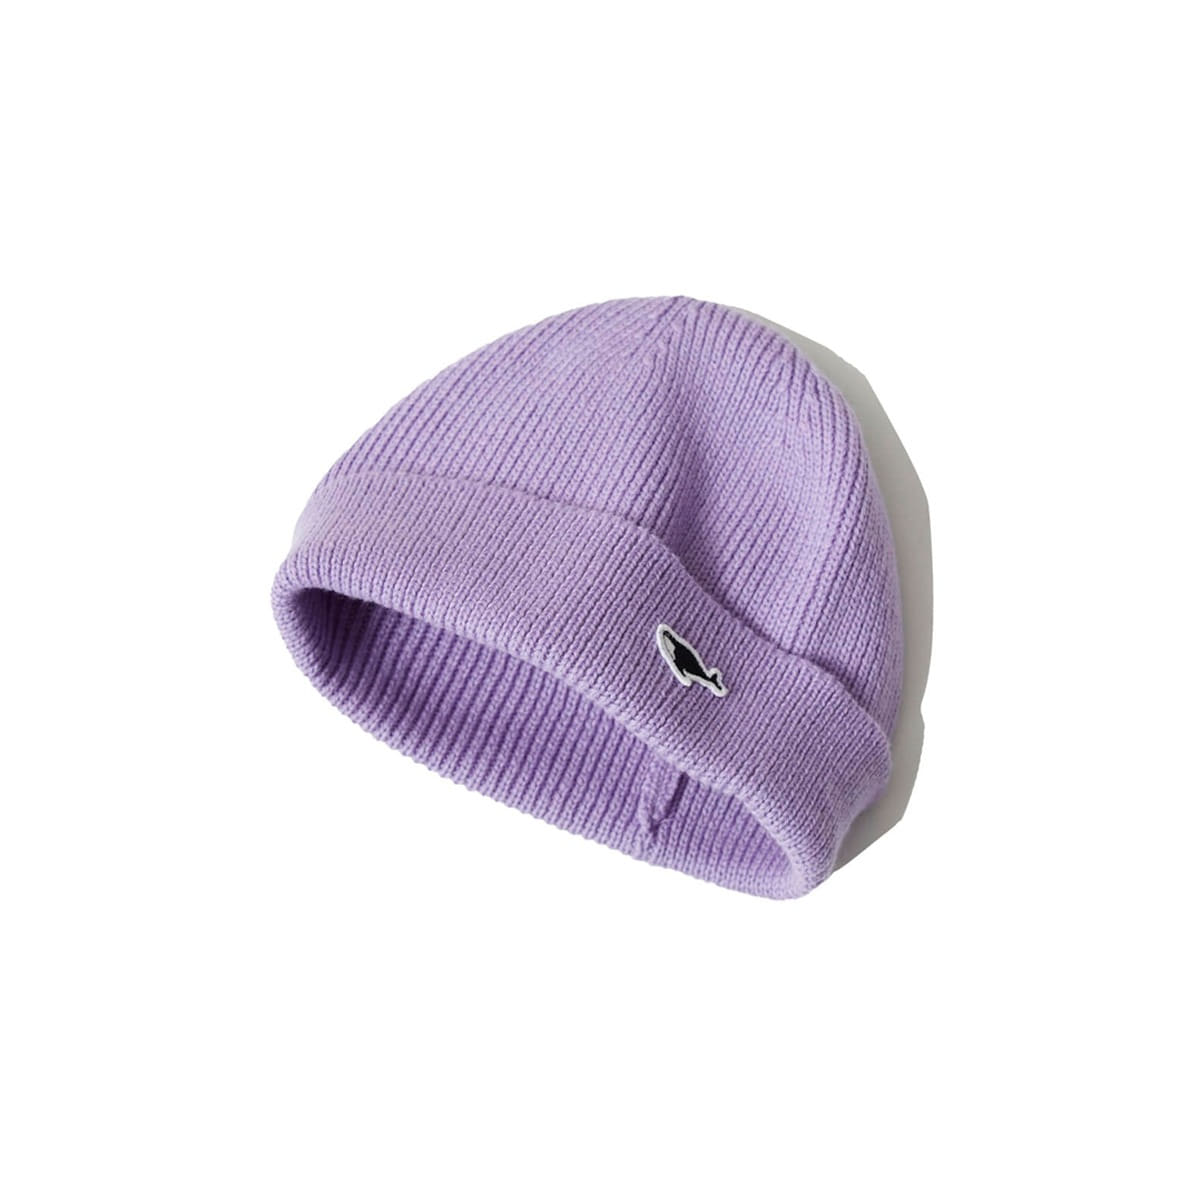 [NEITHERS] D5014-1 S WATCH CAP 'LAVENDER'